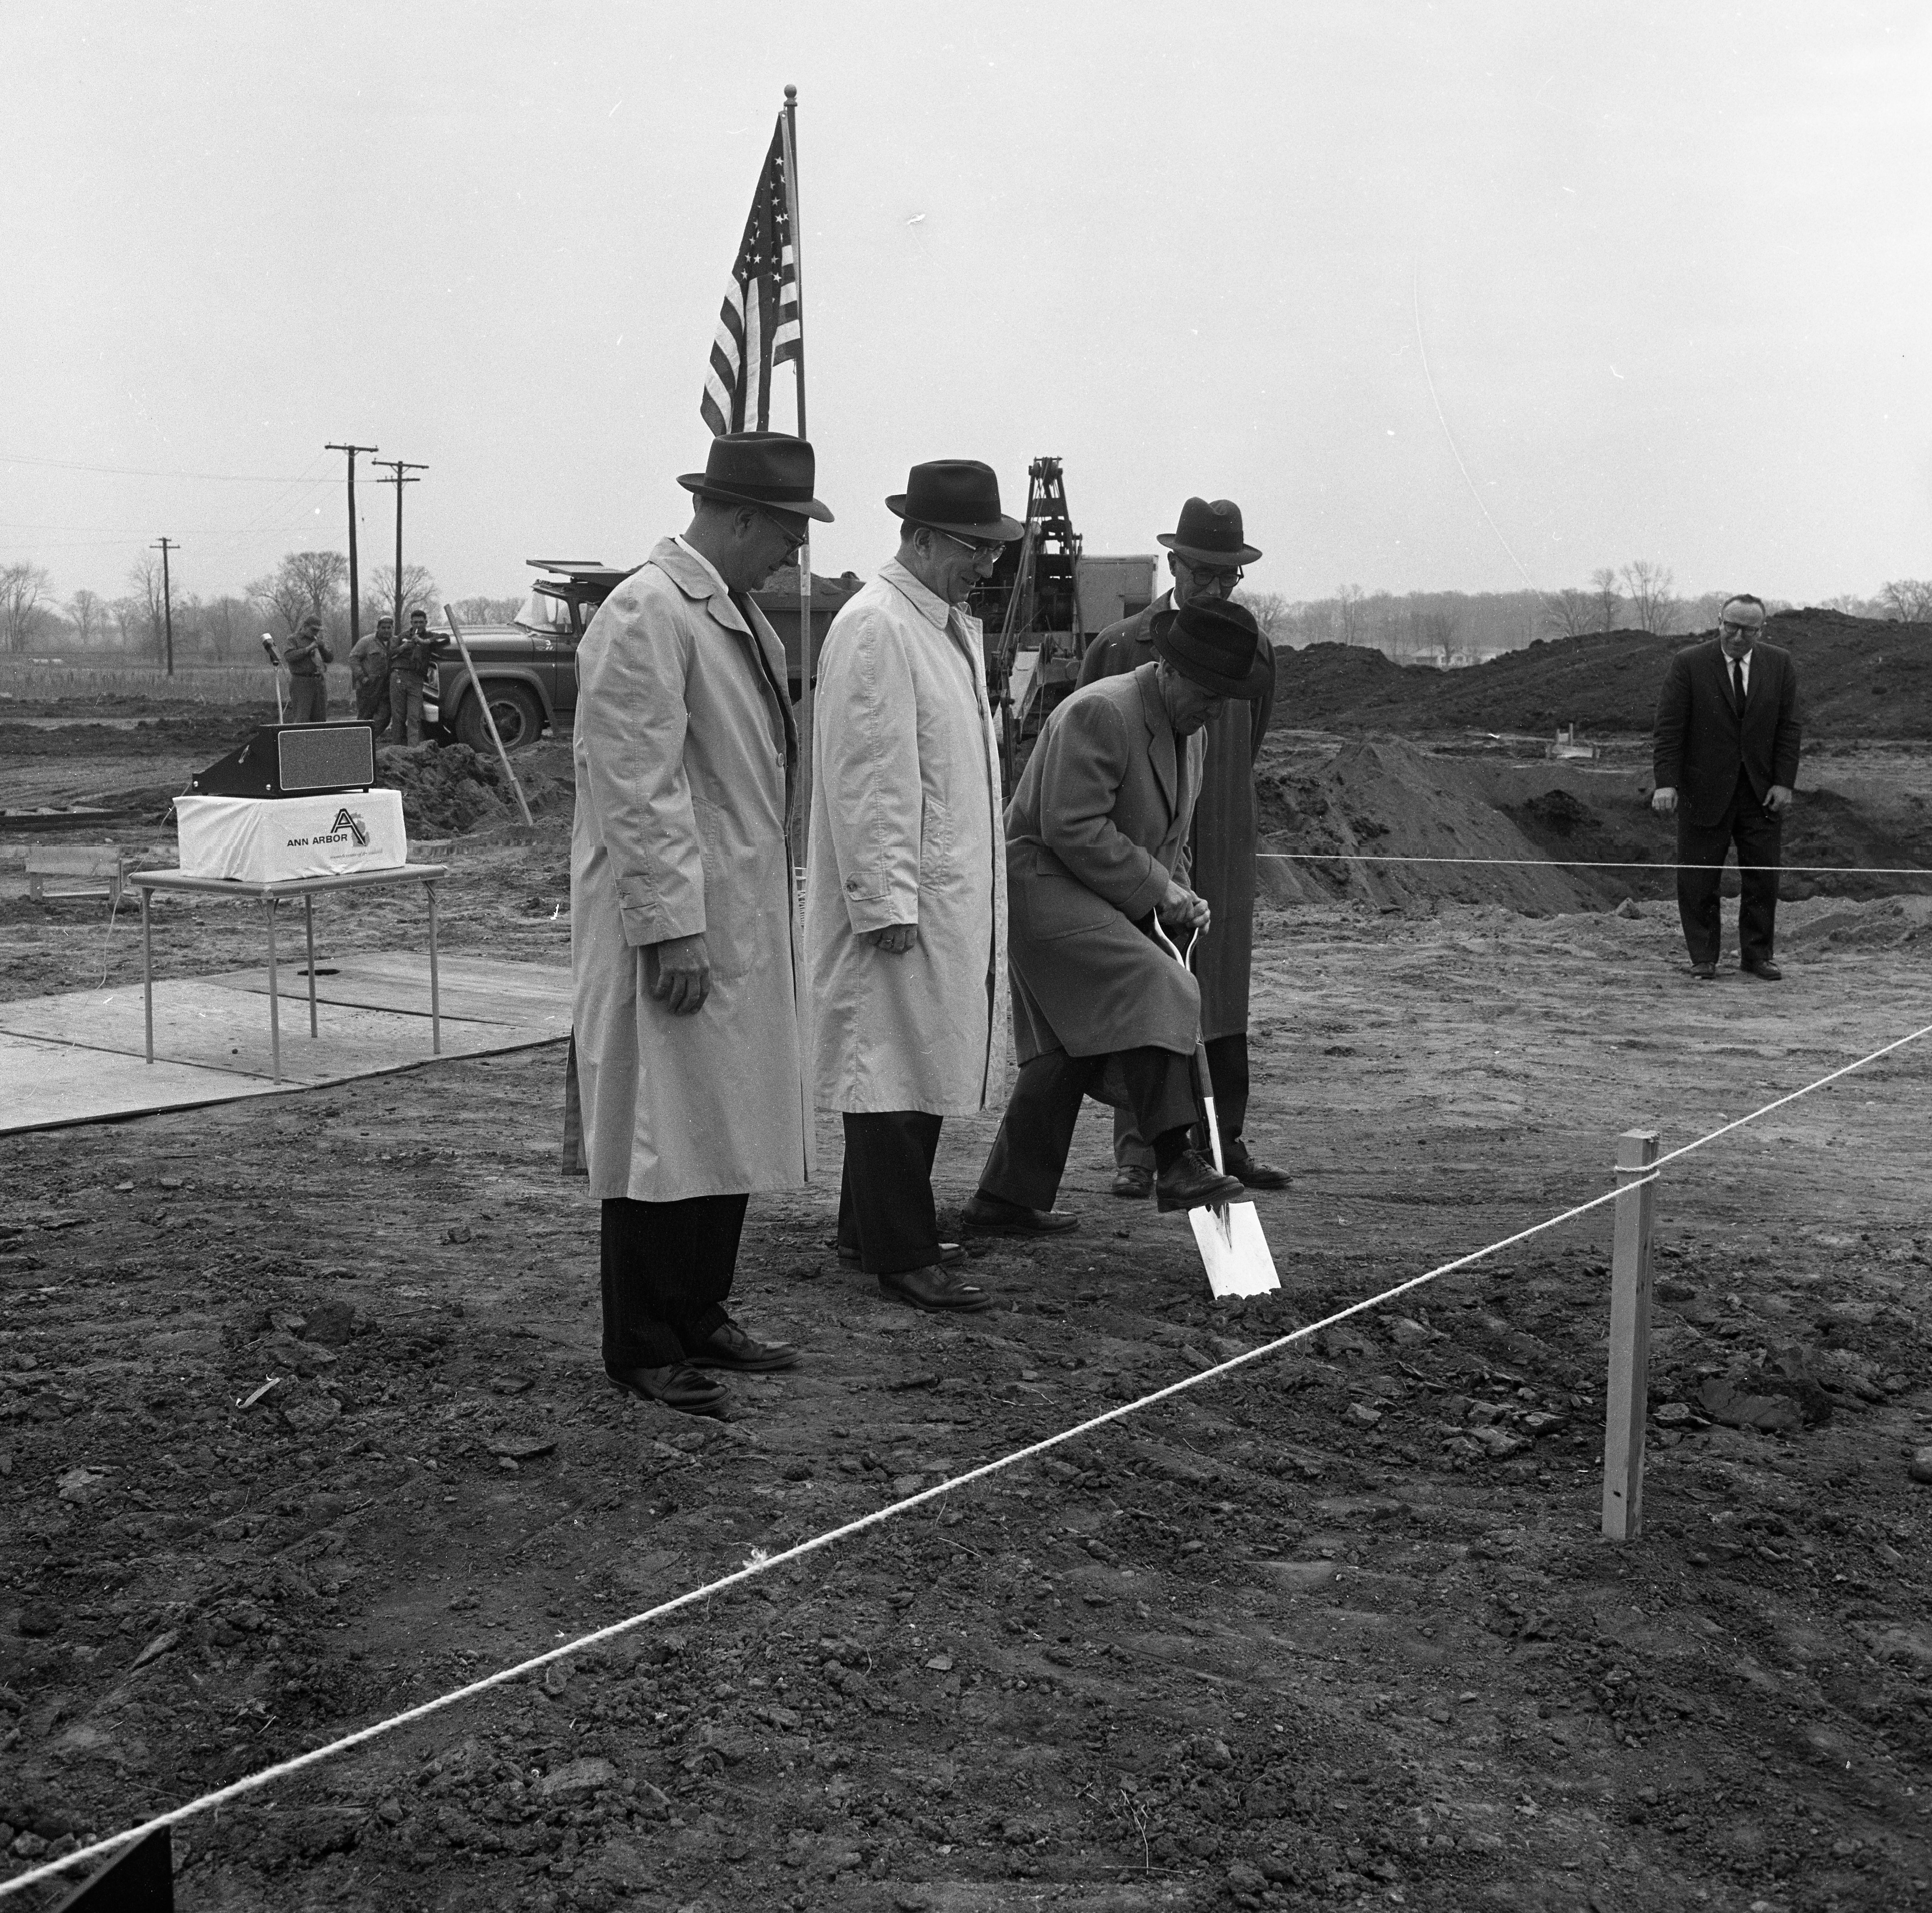 Federal-Mogul Groundbreaking Ceremony at Ann Arbor Research Park, April 1962 image